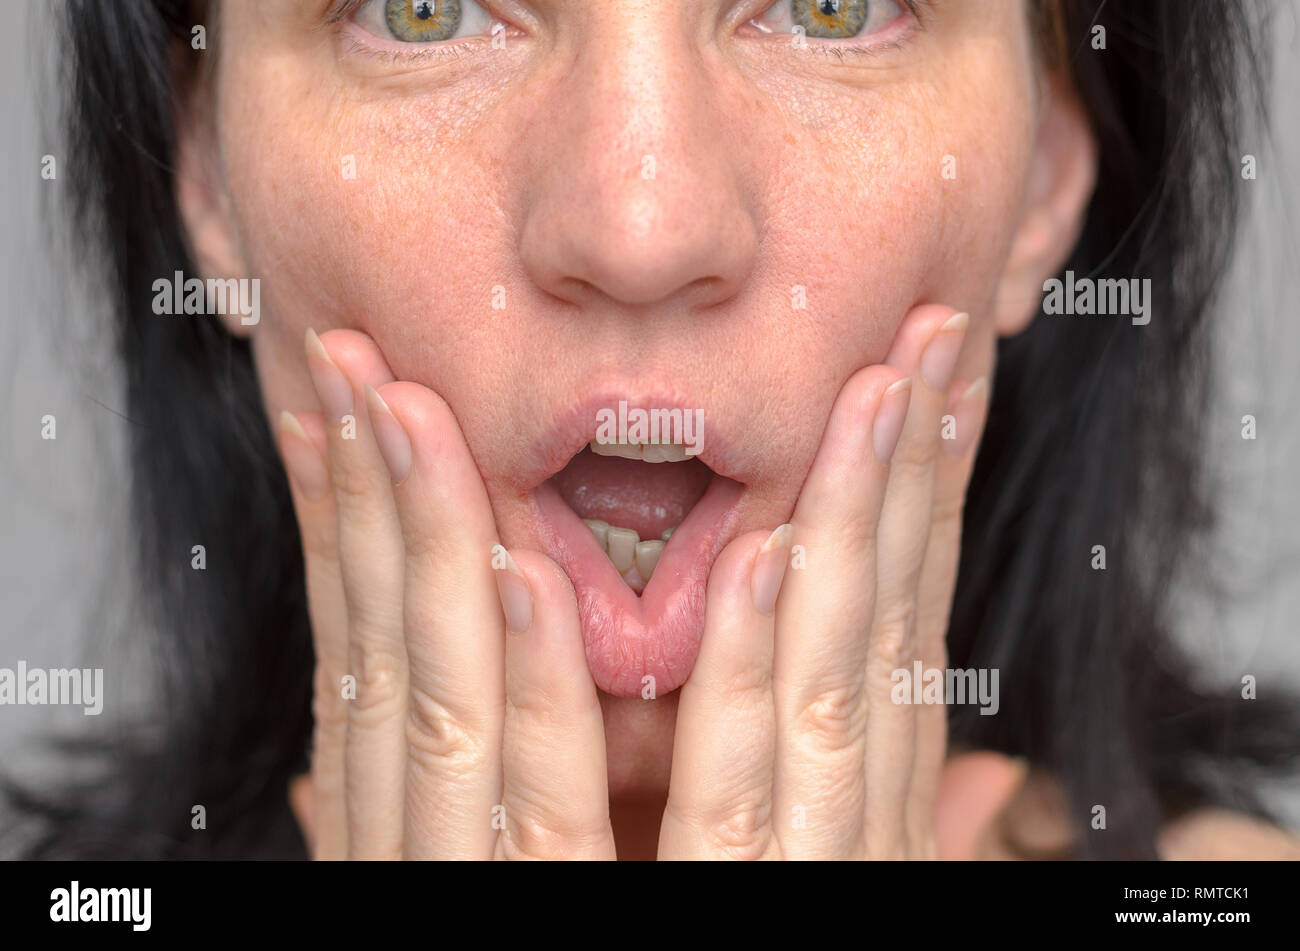 Woman with wide green eyes squashing her face with her hands holding her fingers to her cheeks on either side of her open mouth in a close up cropped  - Stock Image